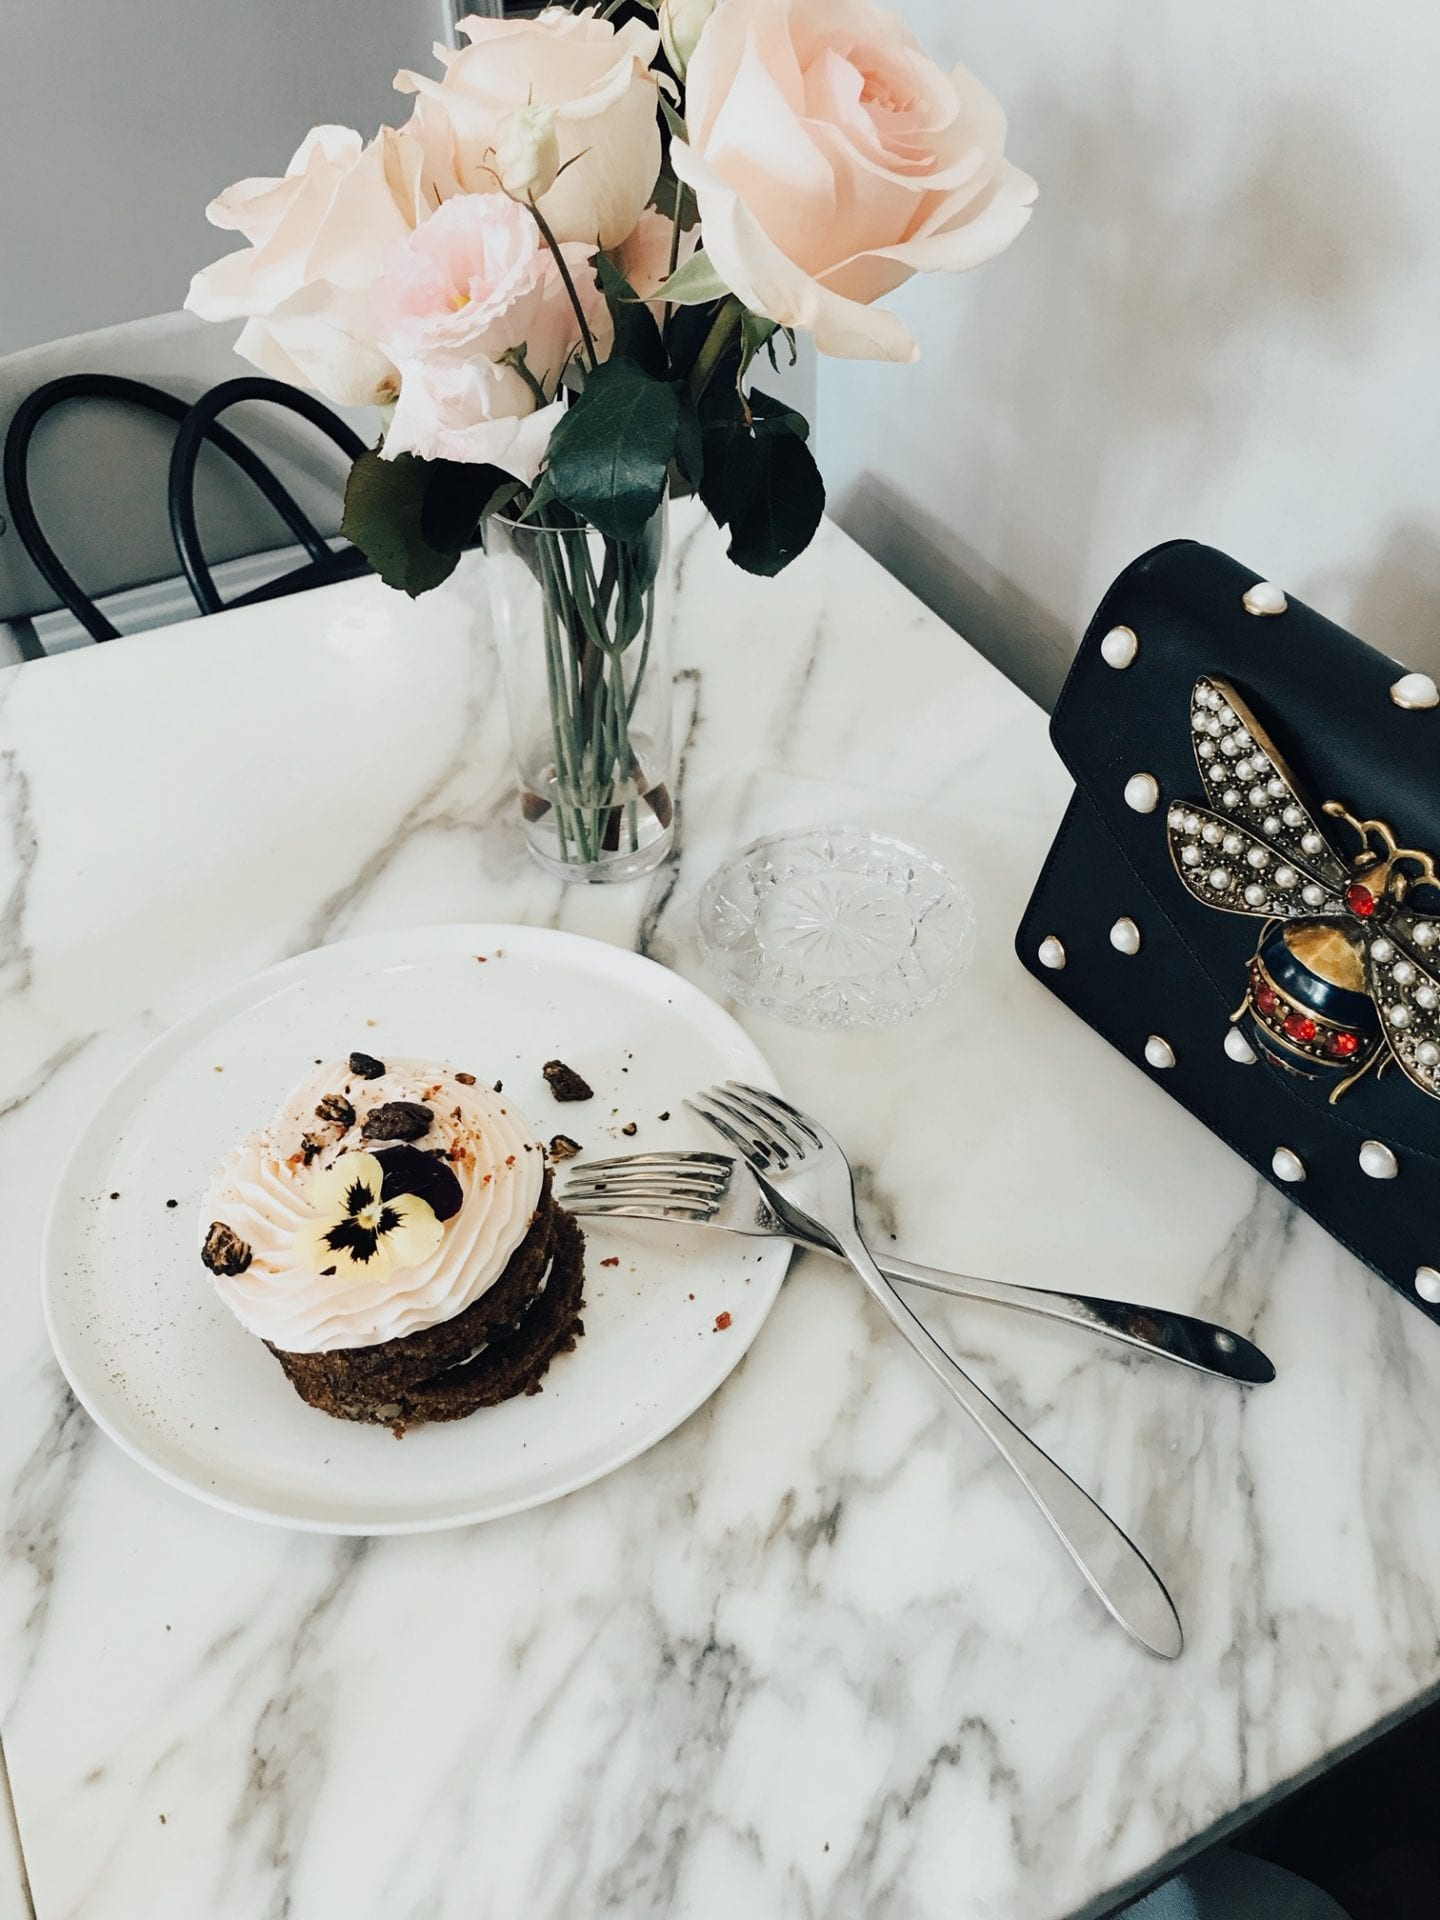 Best Valentine's Day Gifts for Her by popular San Francisco life and style blog, Just Add Glam: image of a small cake and a vase of light pink roses.